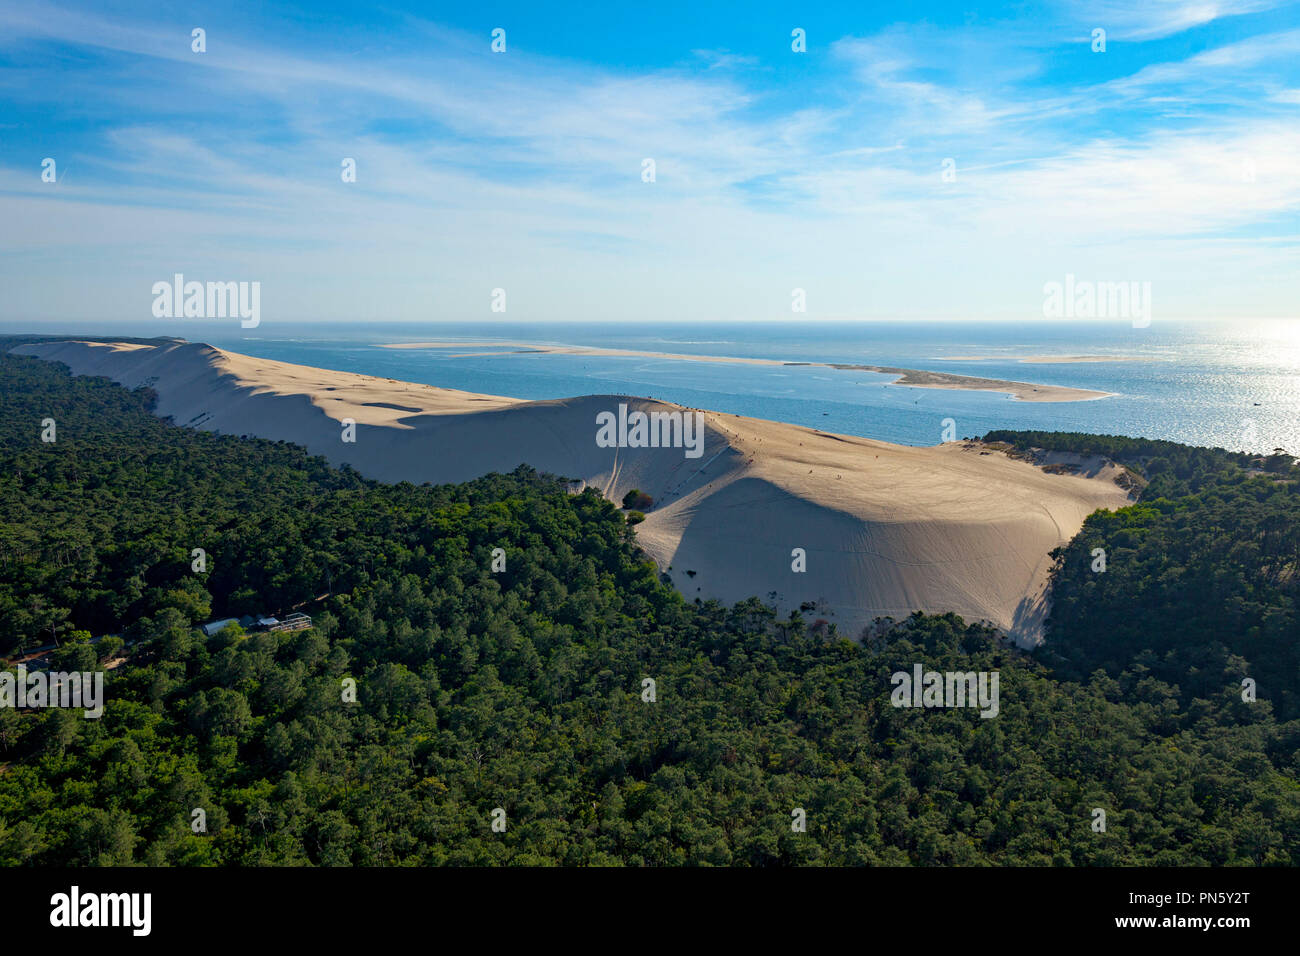 Aerial View Of The Pyla Dune In The Arcachon Bay Overview Of The